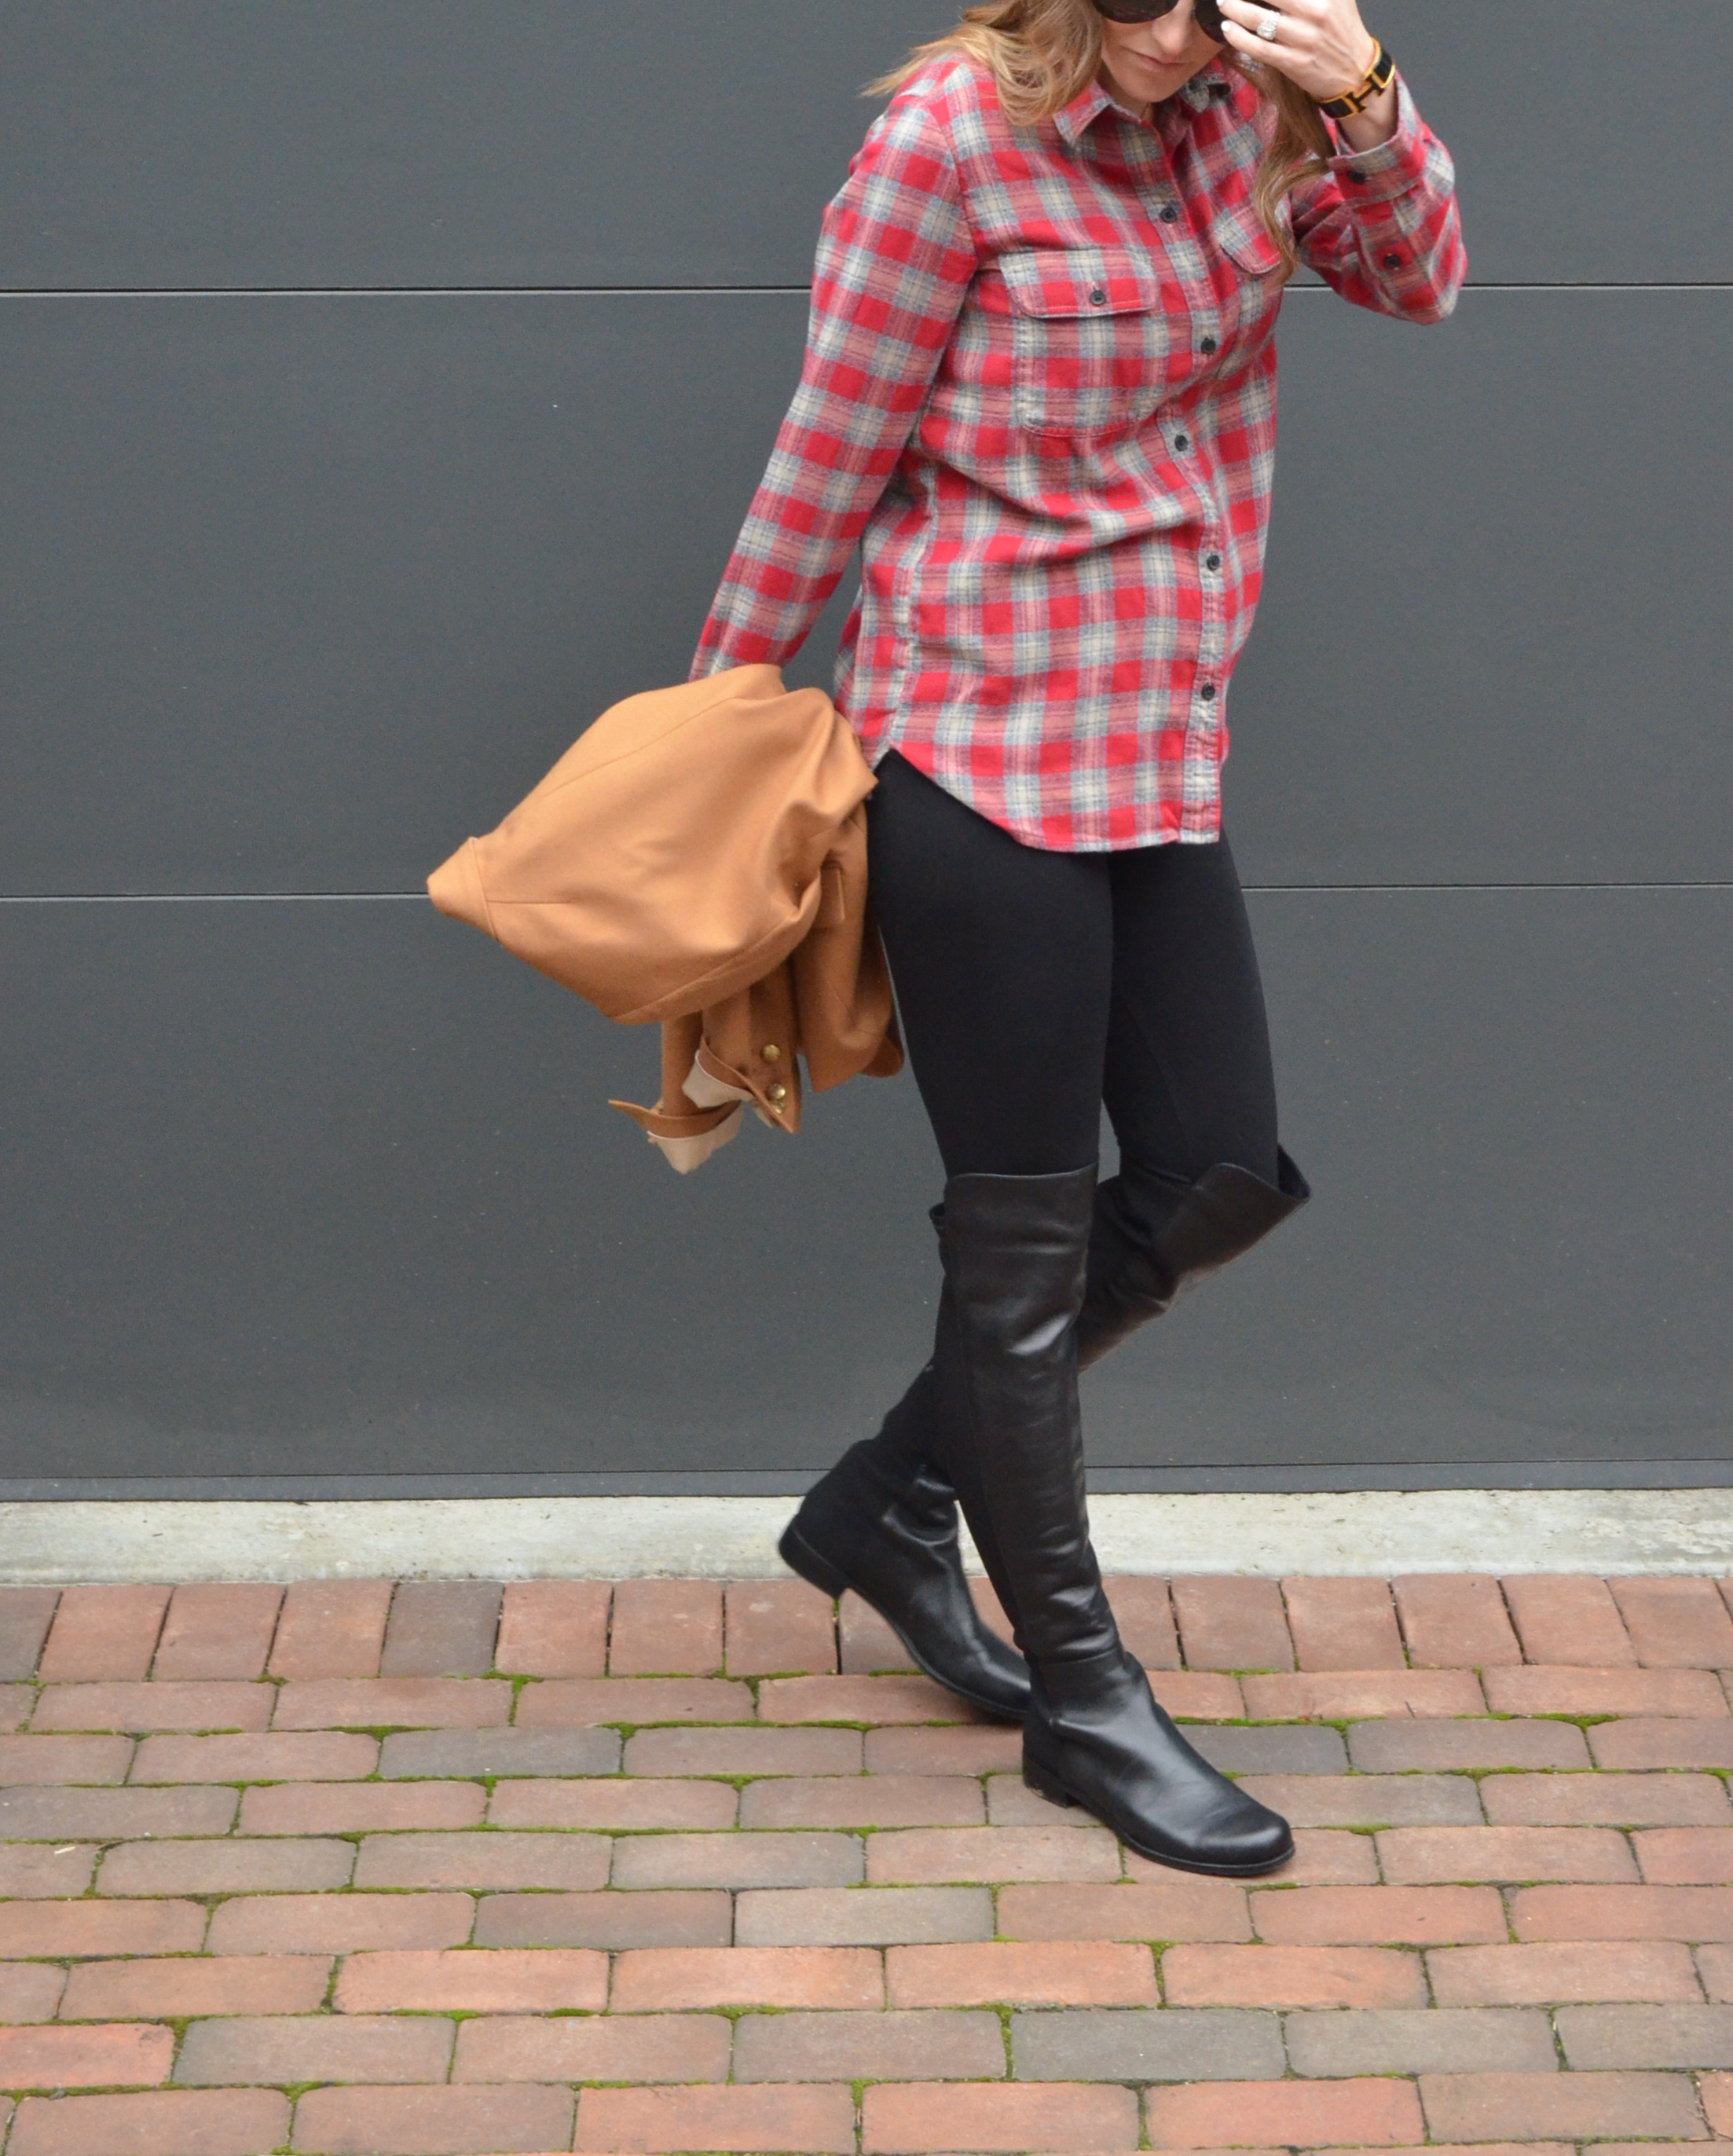 23 weeks pregnant outfit maternity style stuart weitzman champagne in the rain